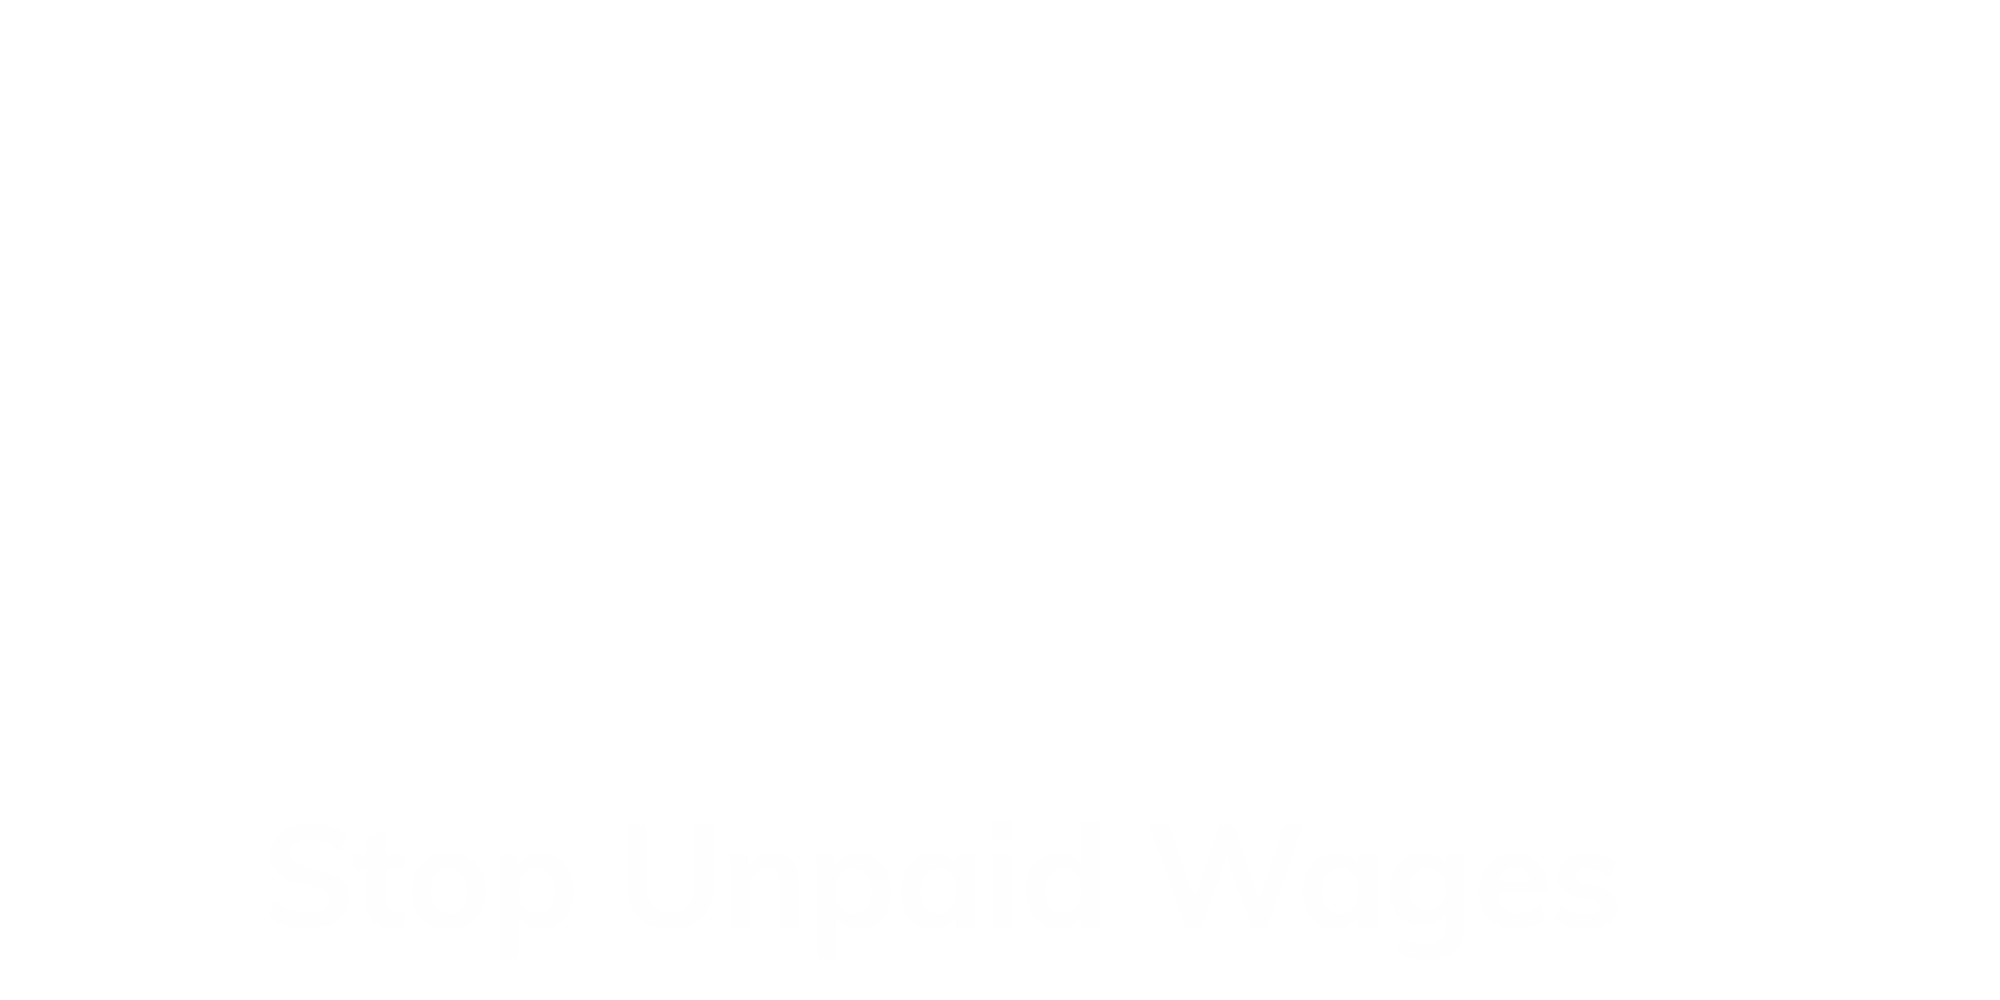 Stop Unpaid Wages logo